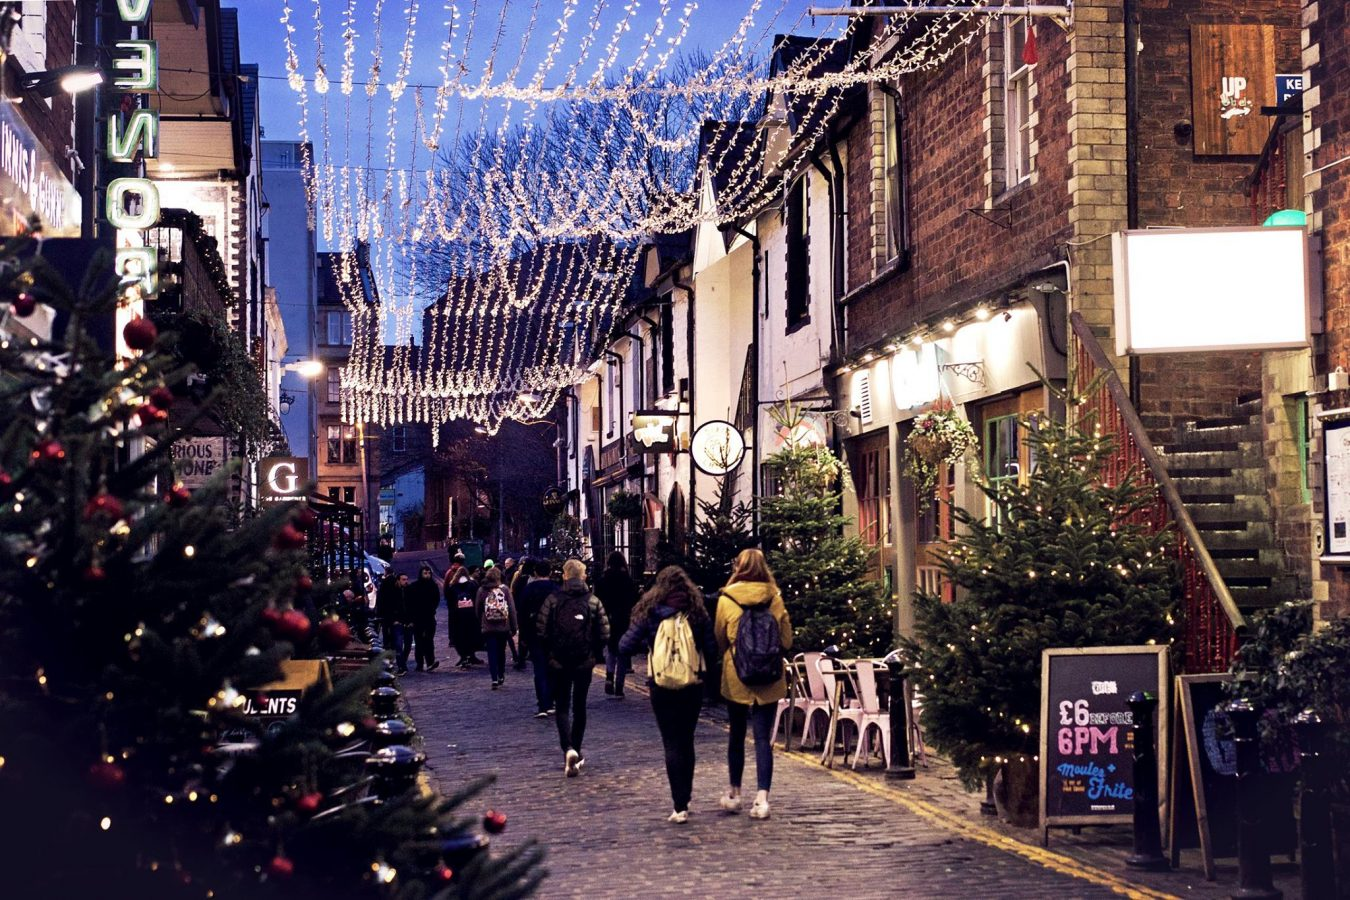 Ashton Lane at Christmas